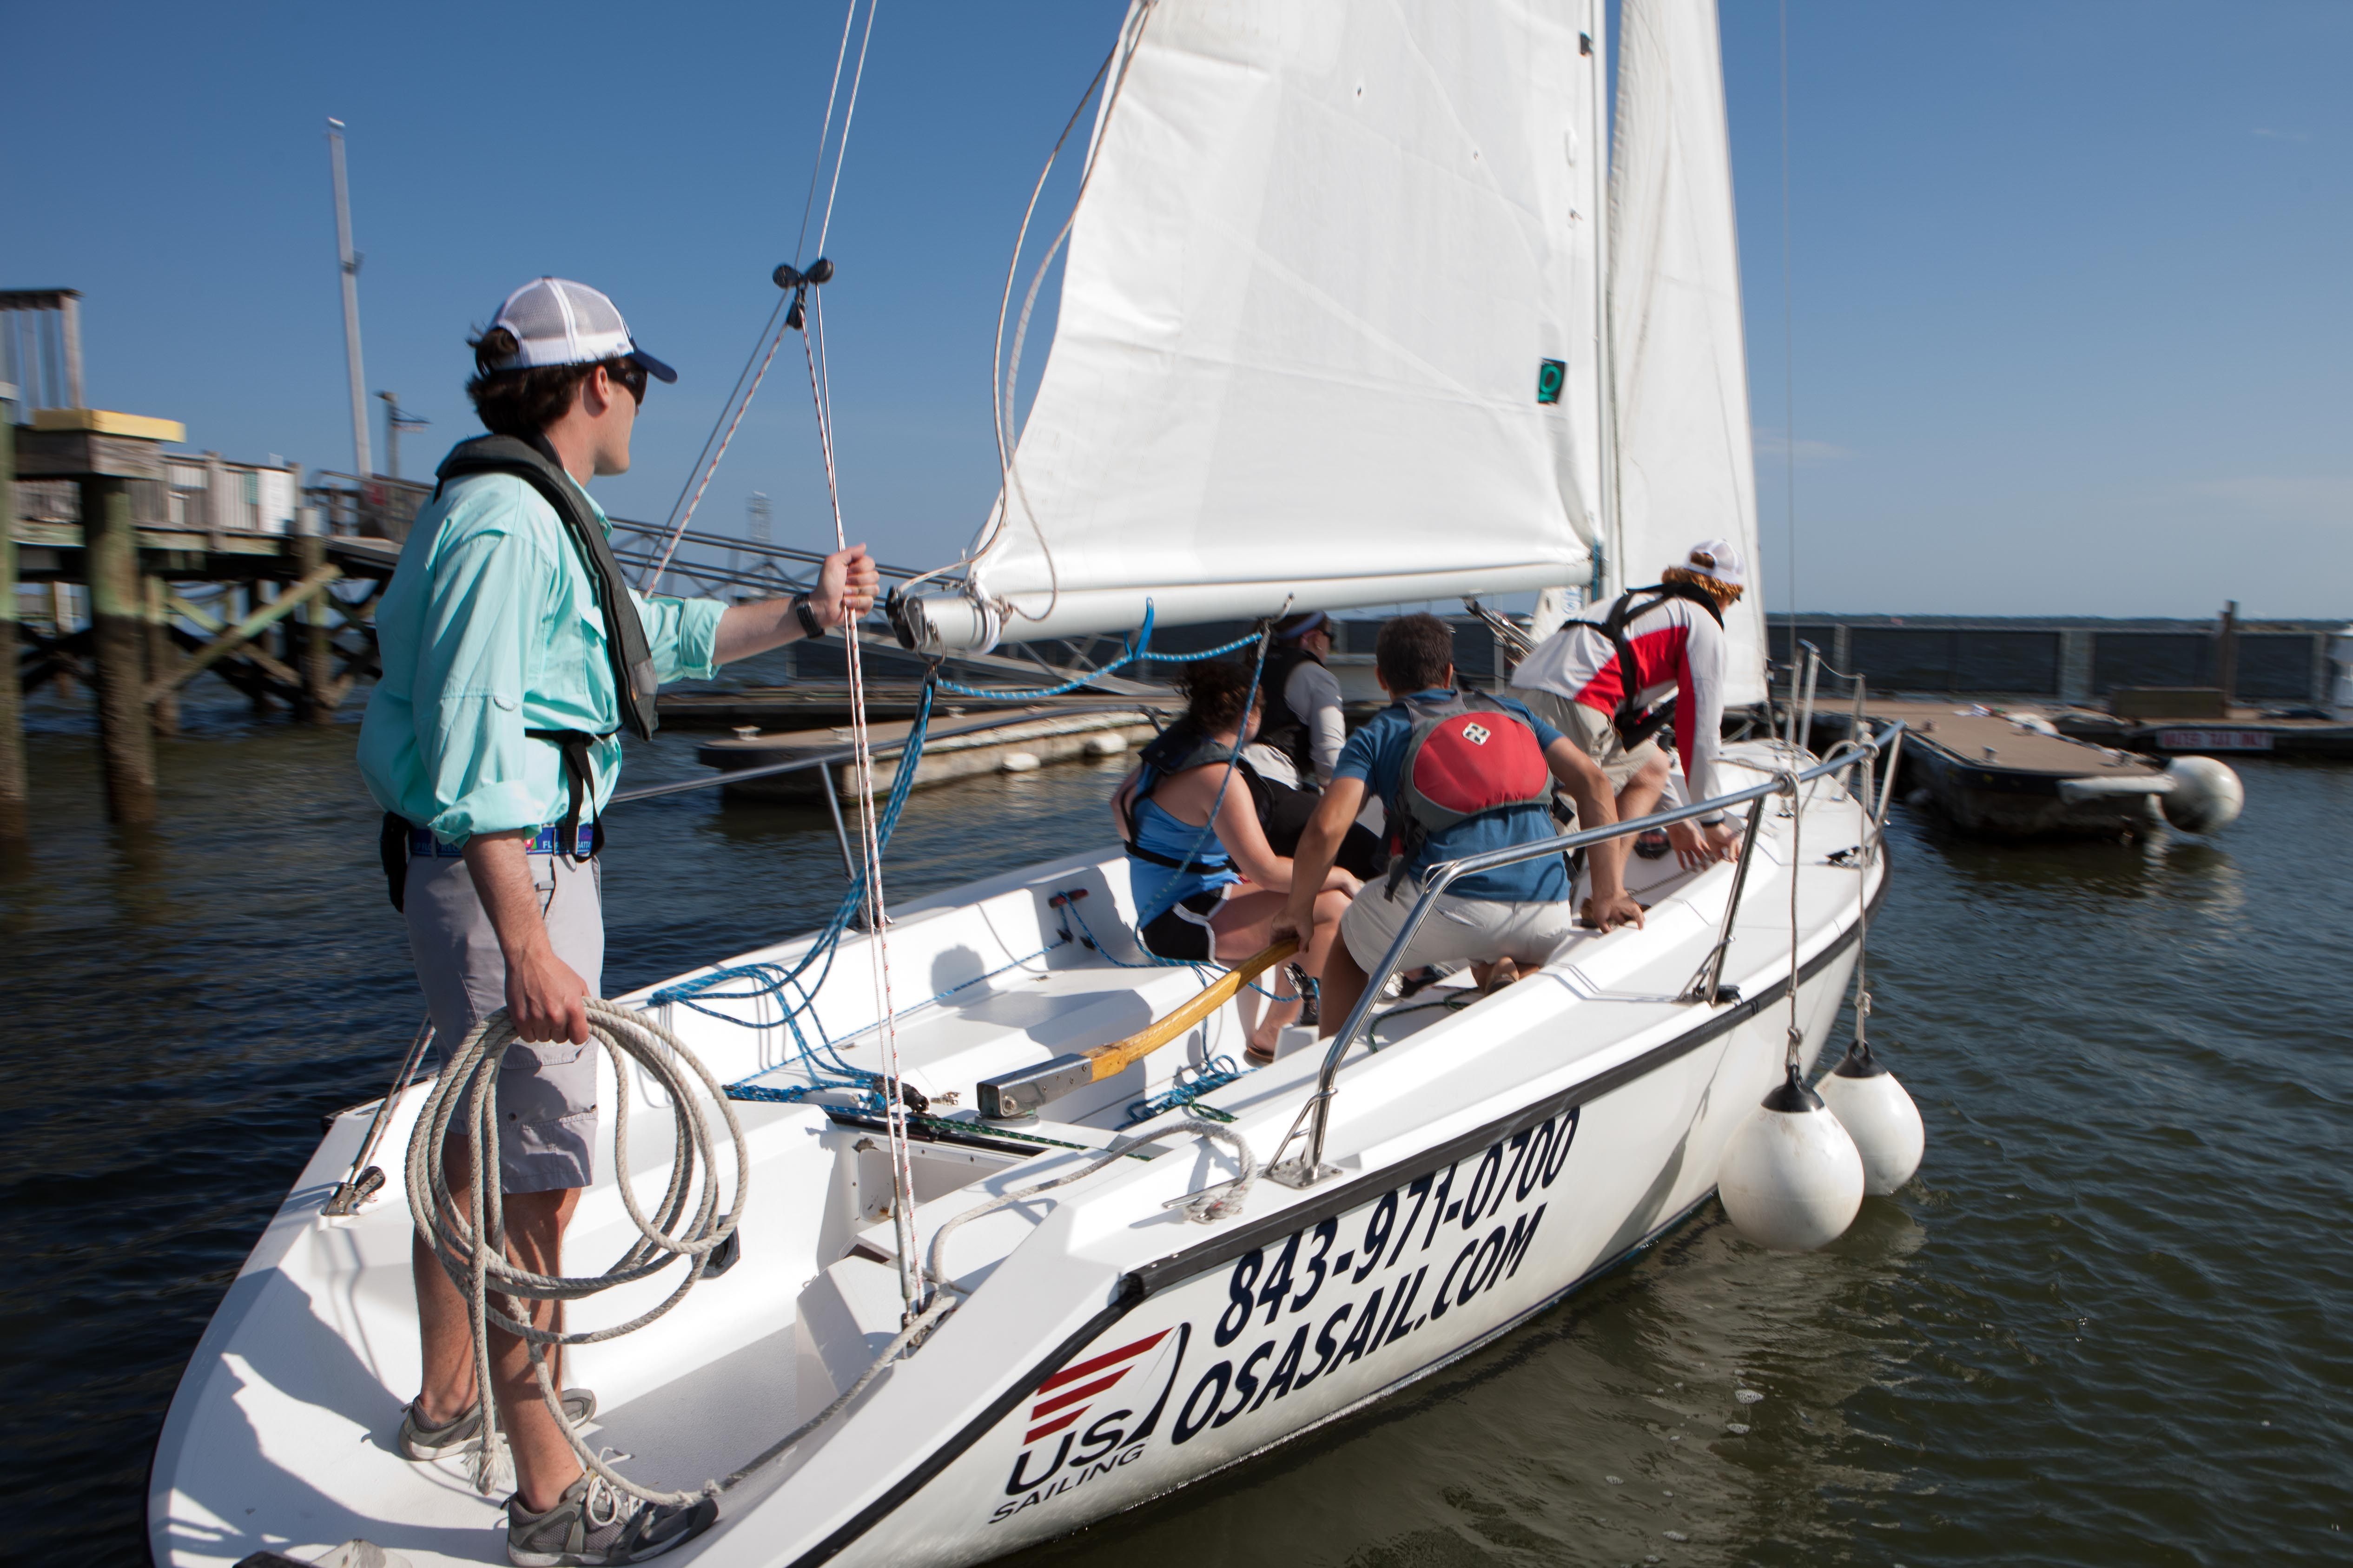 Students approaching the dock on a sailboat